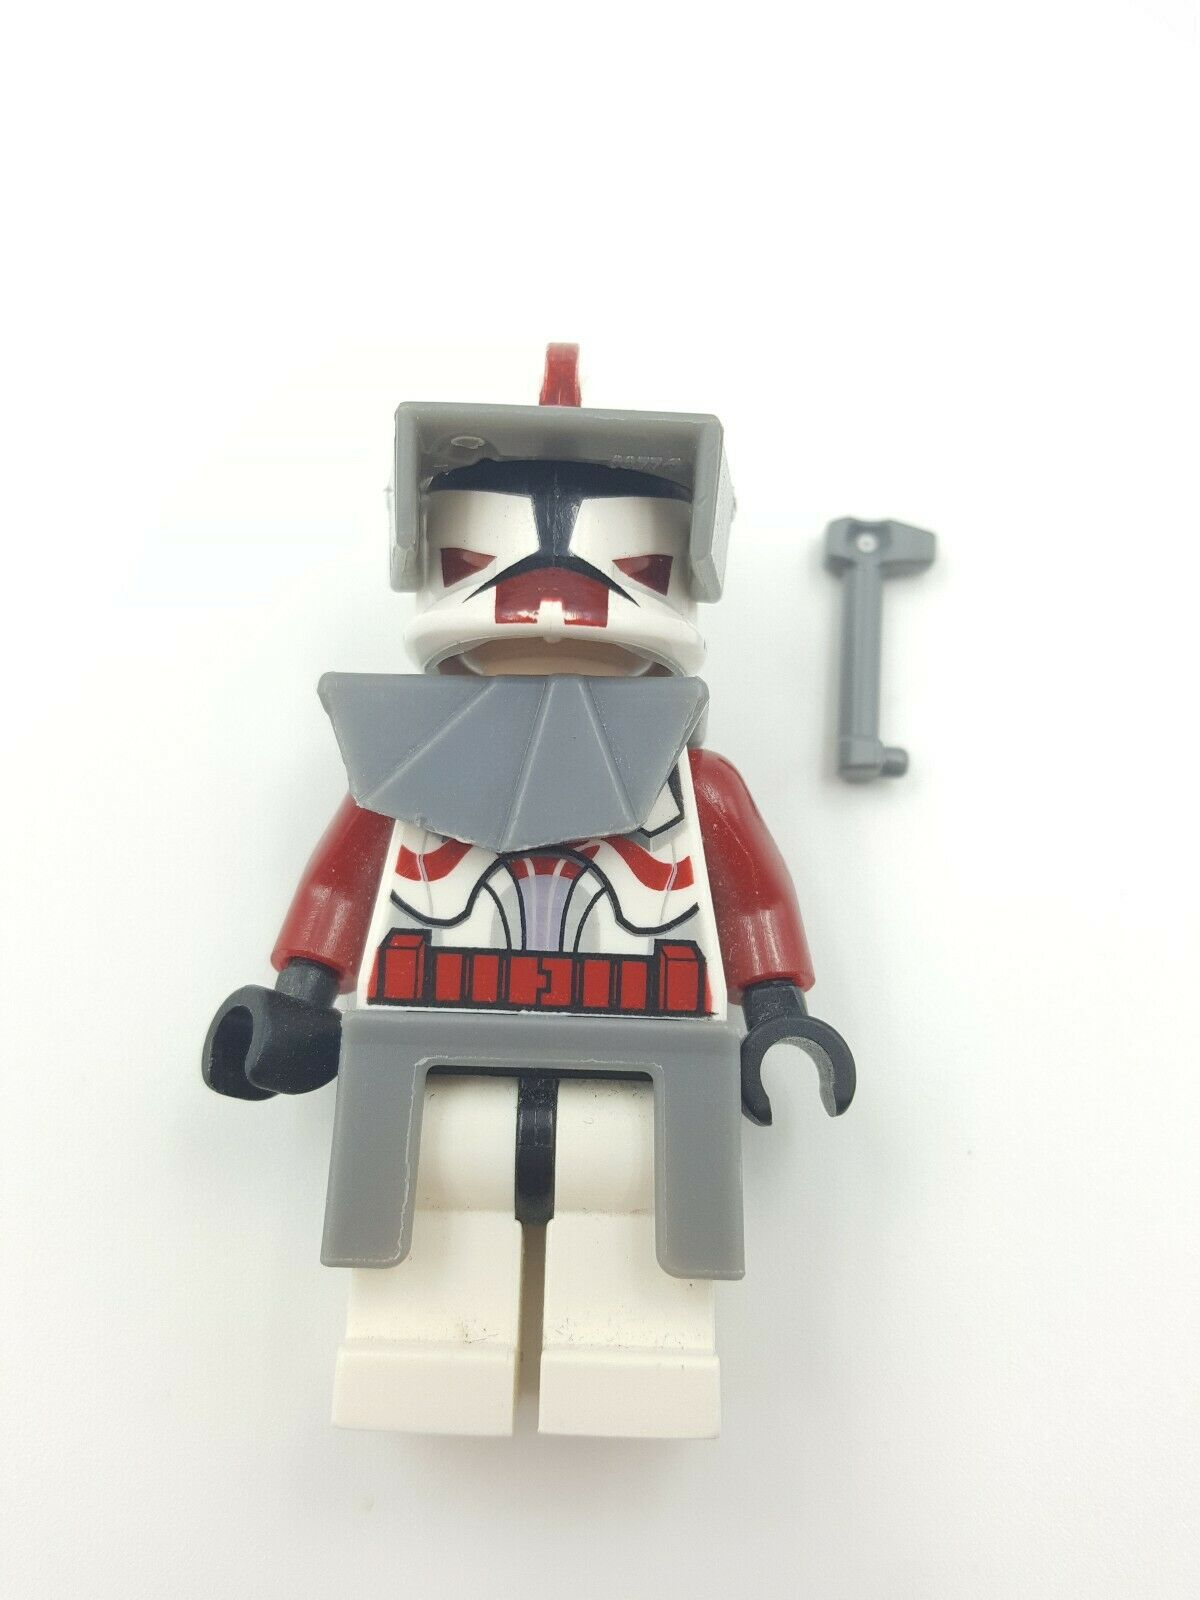 Lego Minifigure Stern Wars Mini Figure Spielzeug SW202 Commander Fox 7681 917